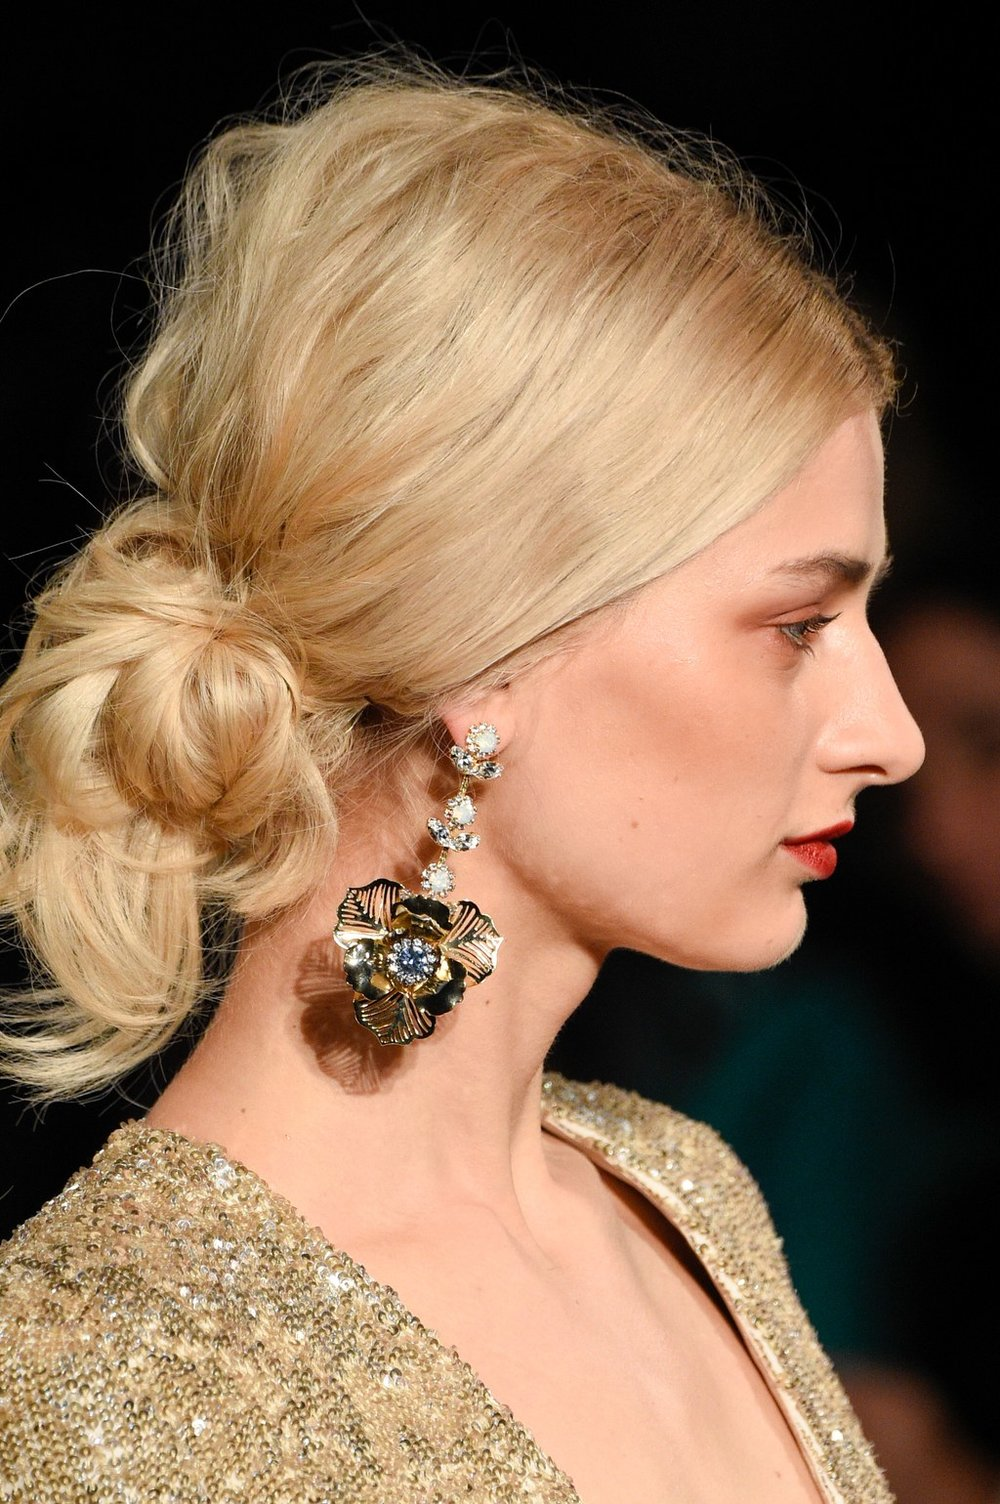 PHOTO: PETER WHITE; HAIR BY PETER GRAY FOR CUTLER/REDKEN SALONS  The New Classic Bun at Badgley Mischka